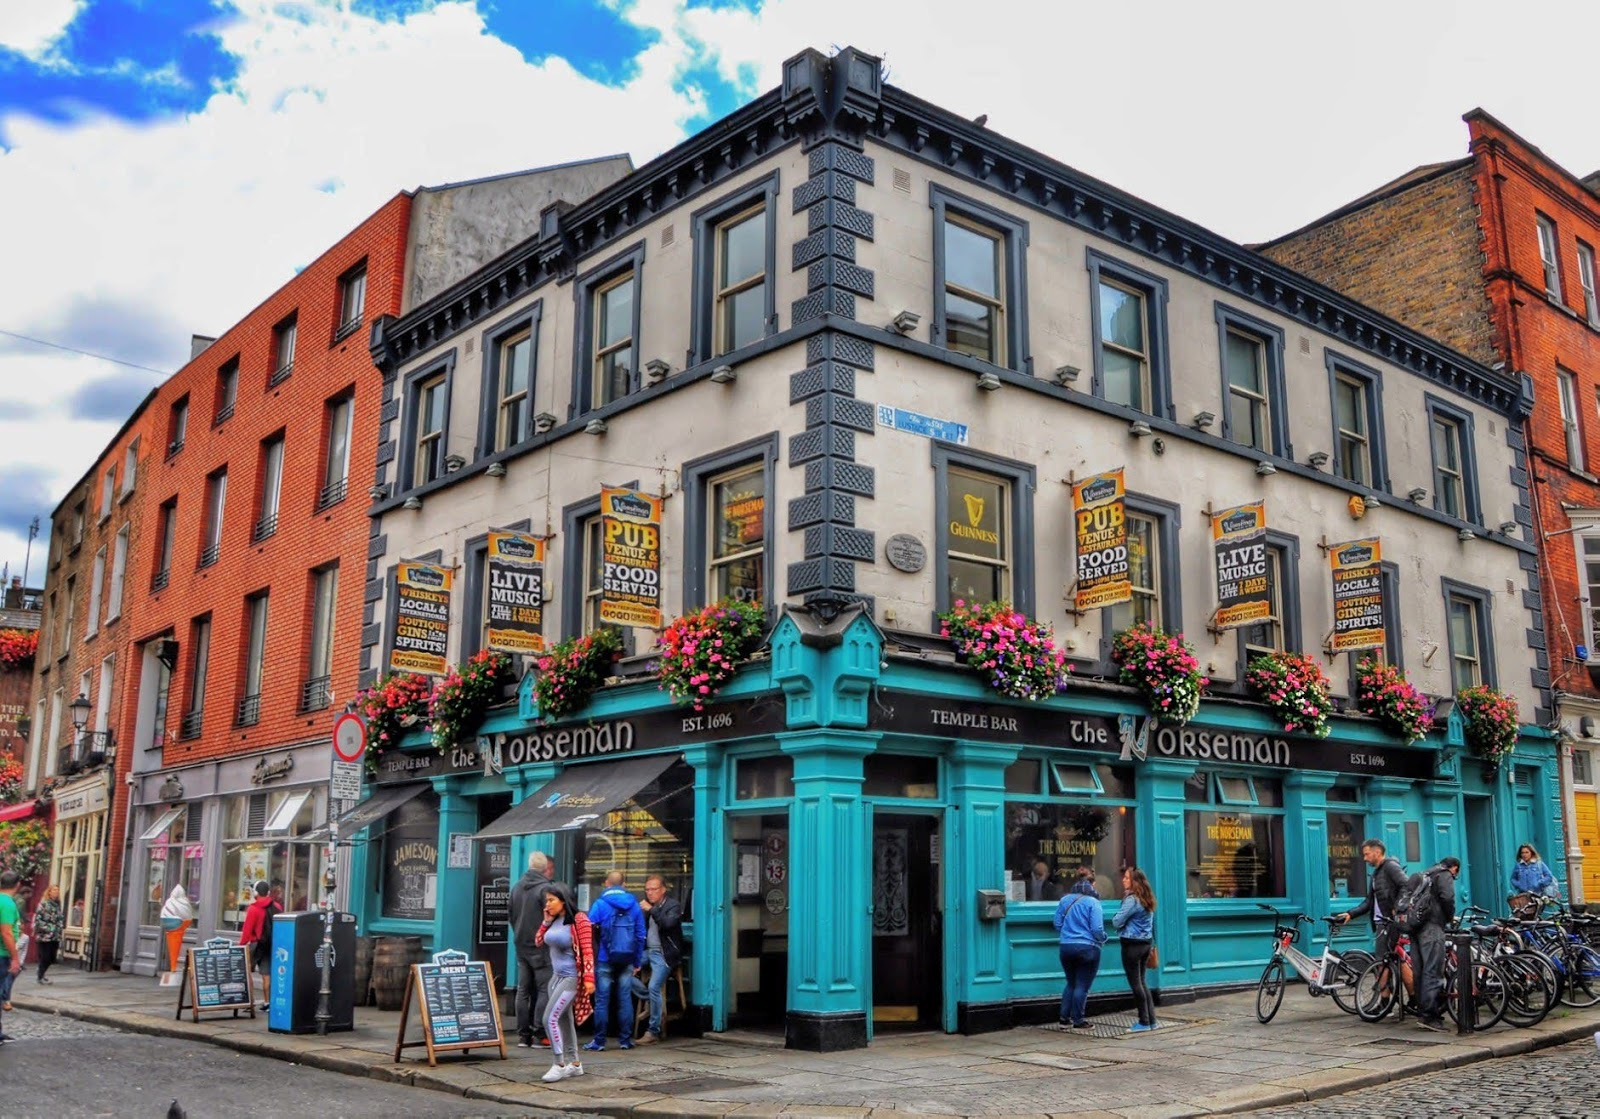 Vacation Home Rentals in Dublin